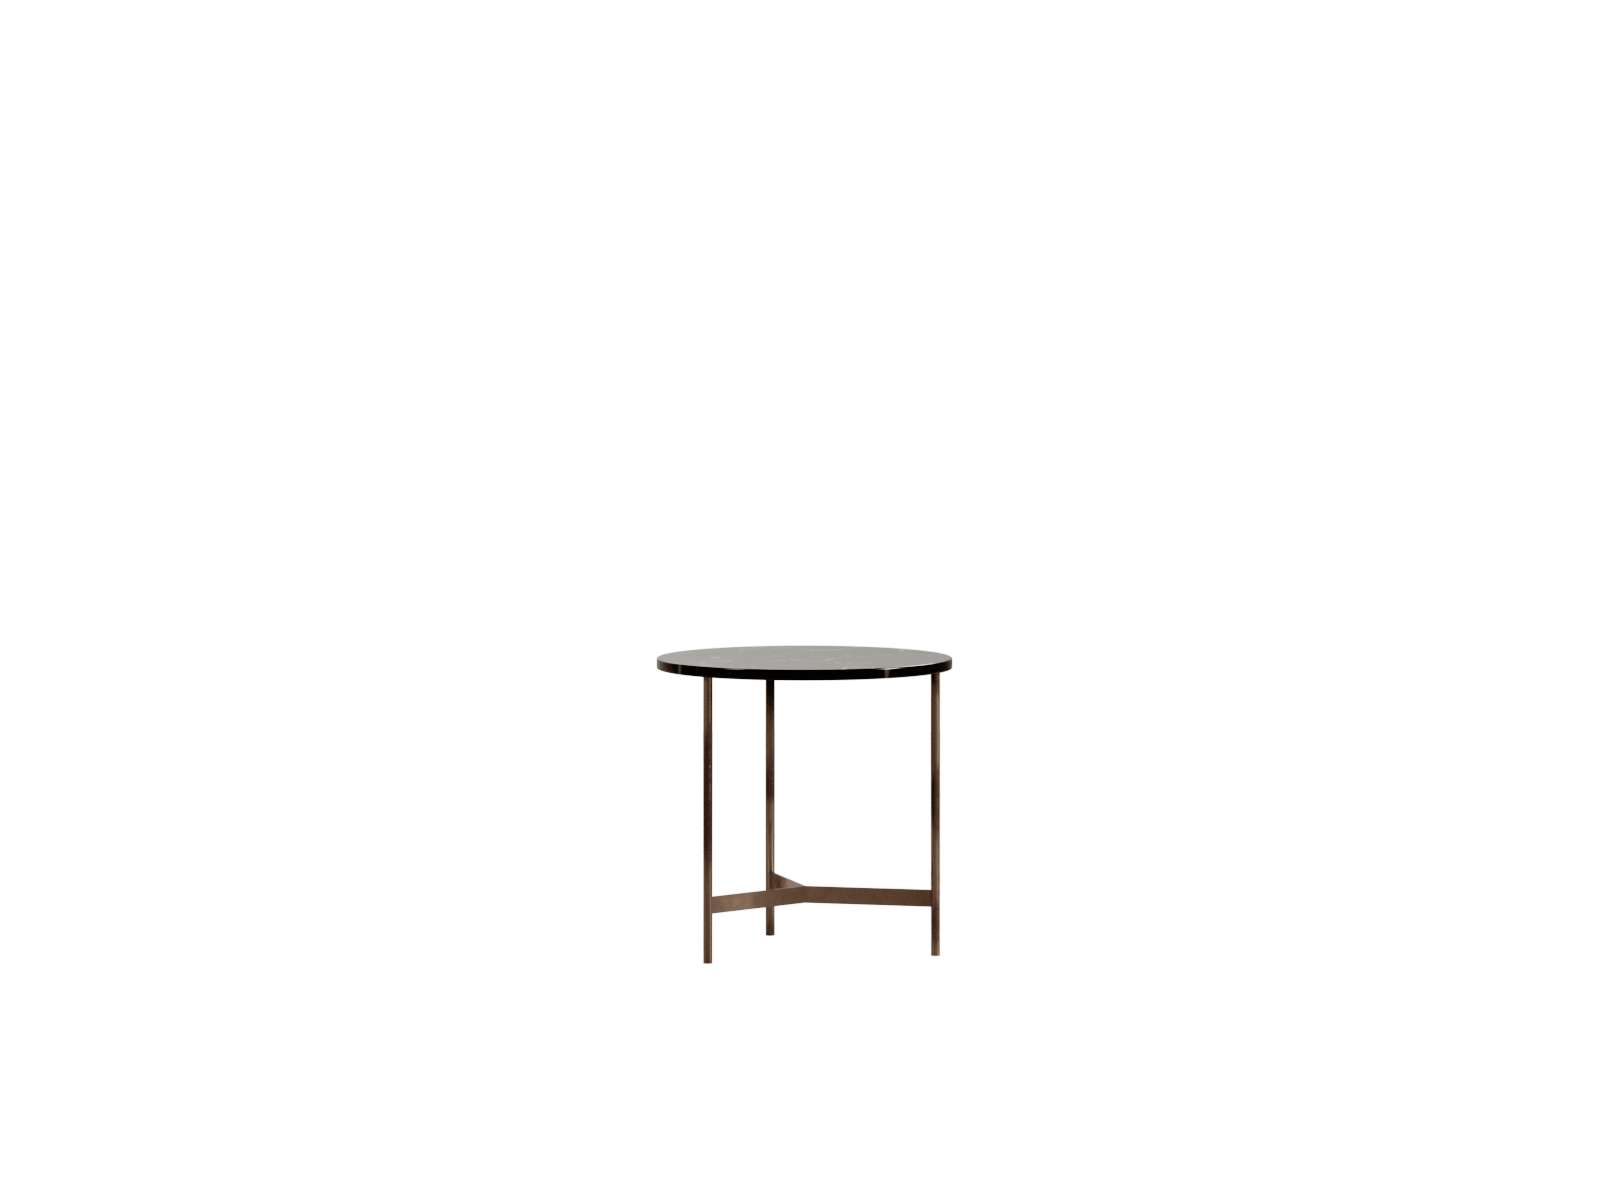 Sims Side Table Retirement Village Furniture